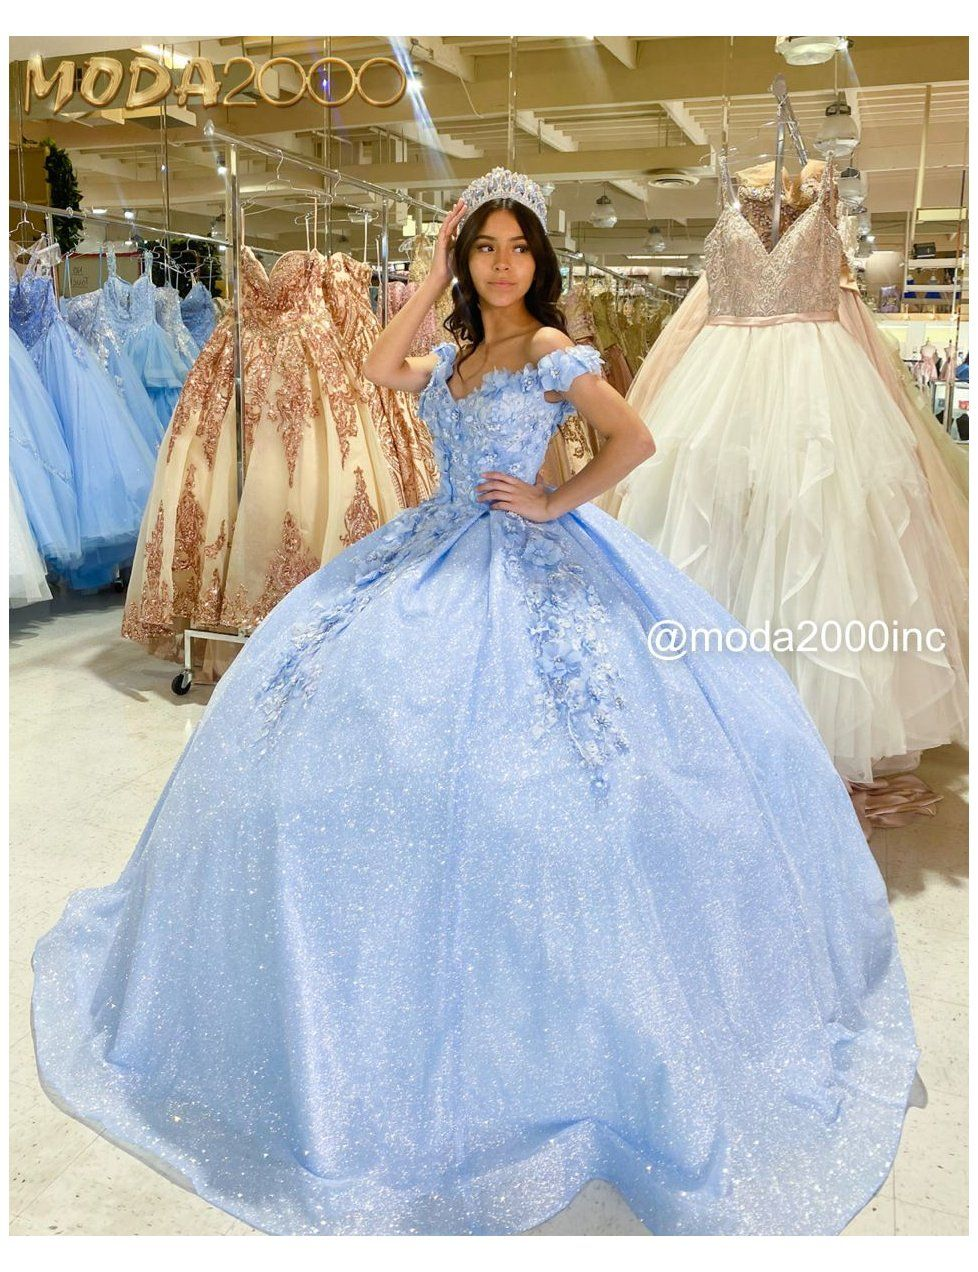 Cinderella Themed Off The Shoulder Bahama Blue Quinceanera Dress Baby Blue Quinceanera In 2021 Quinceanera Dresses Blue Quince Dresses Baby Blue Quinceanera Dresses [ 1272 x 978 Pixel ]